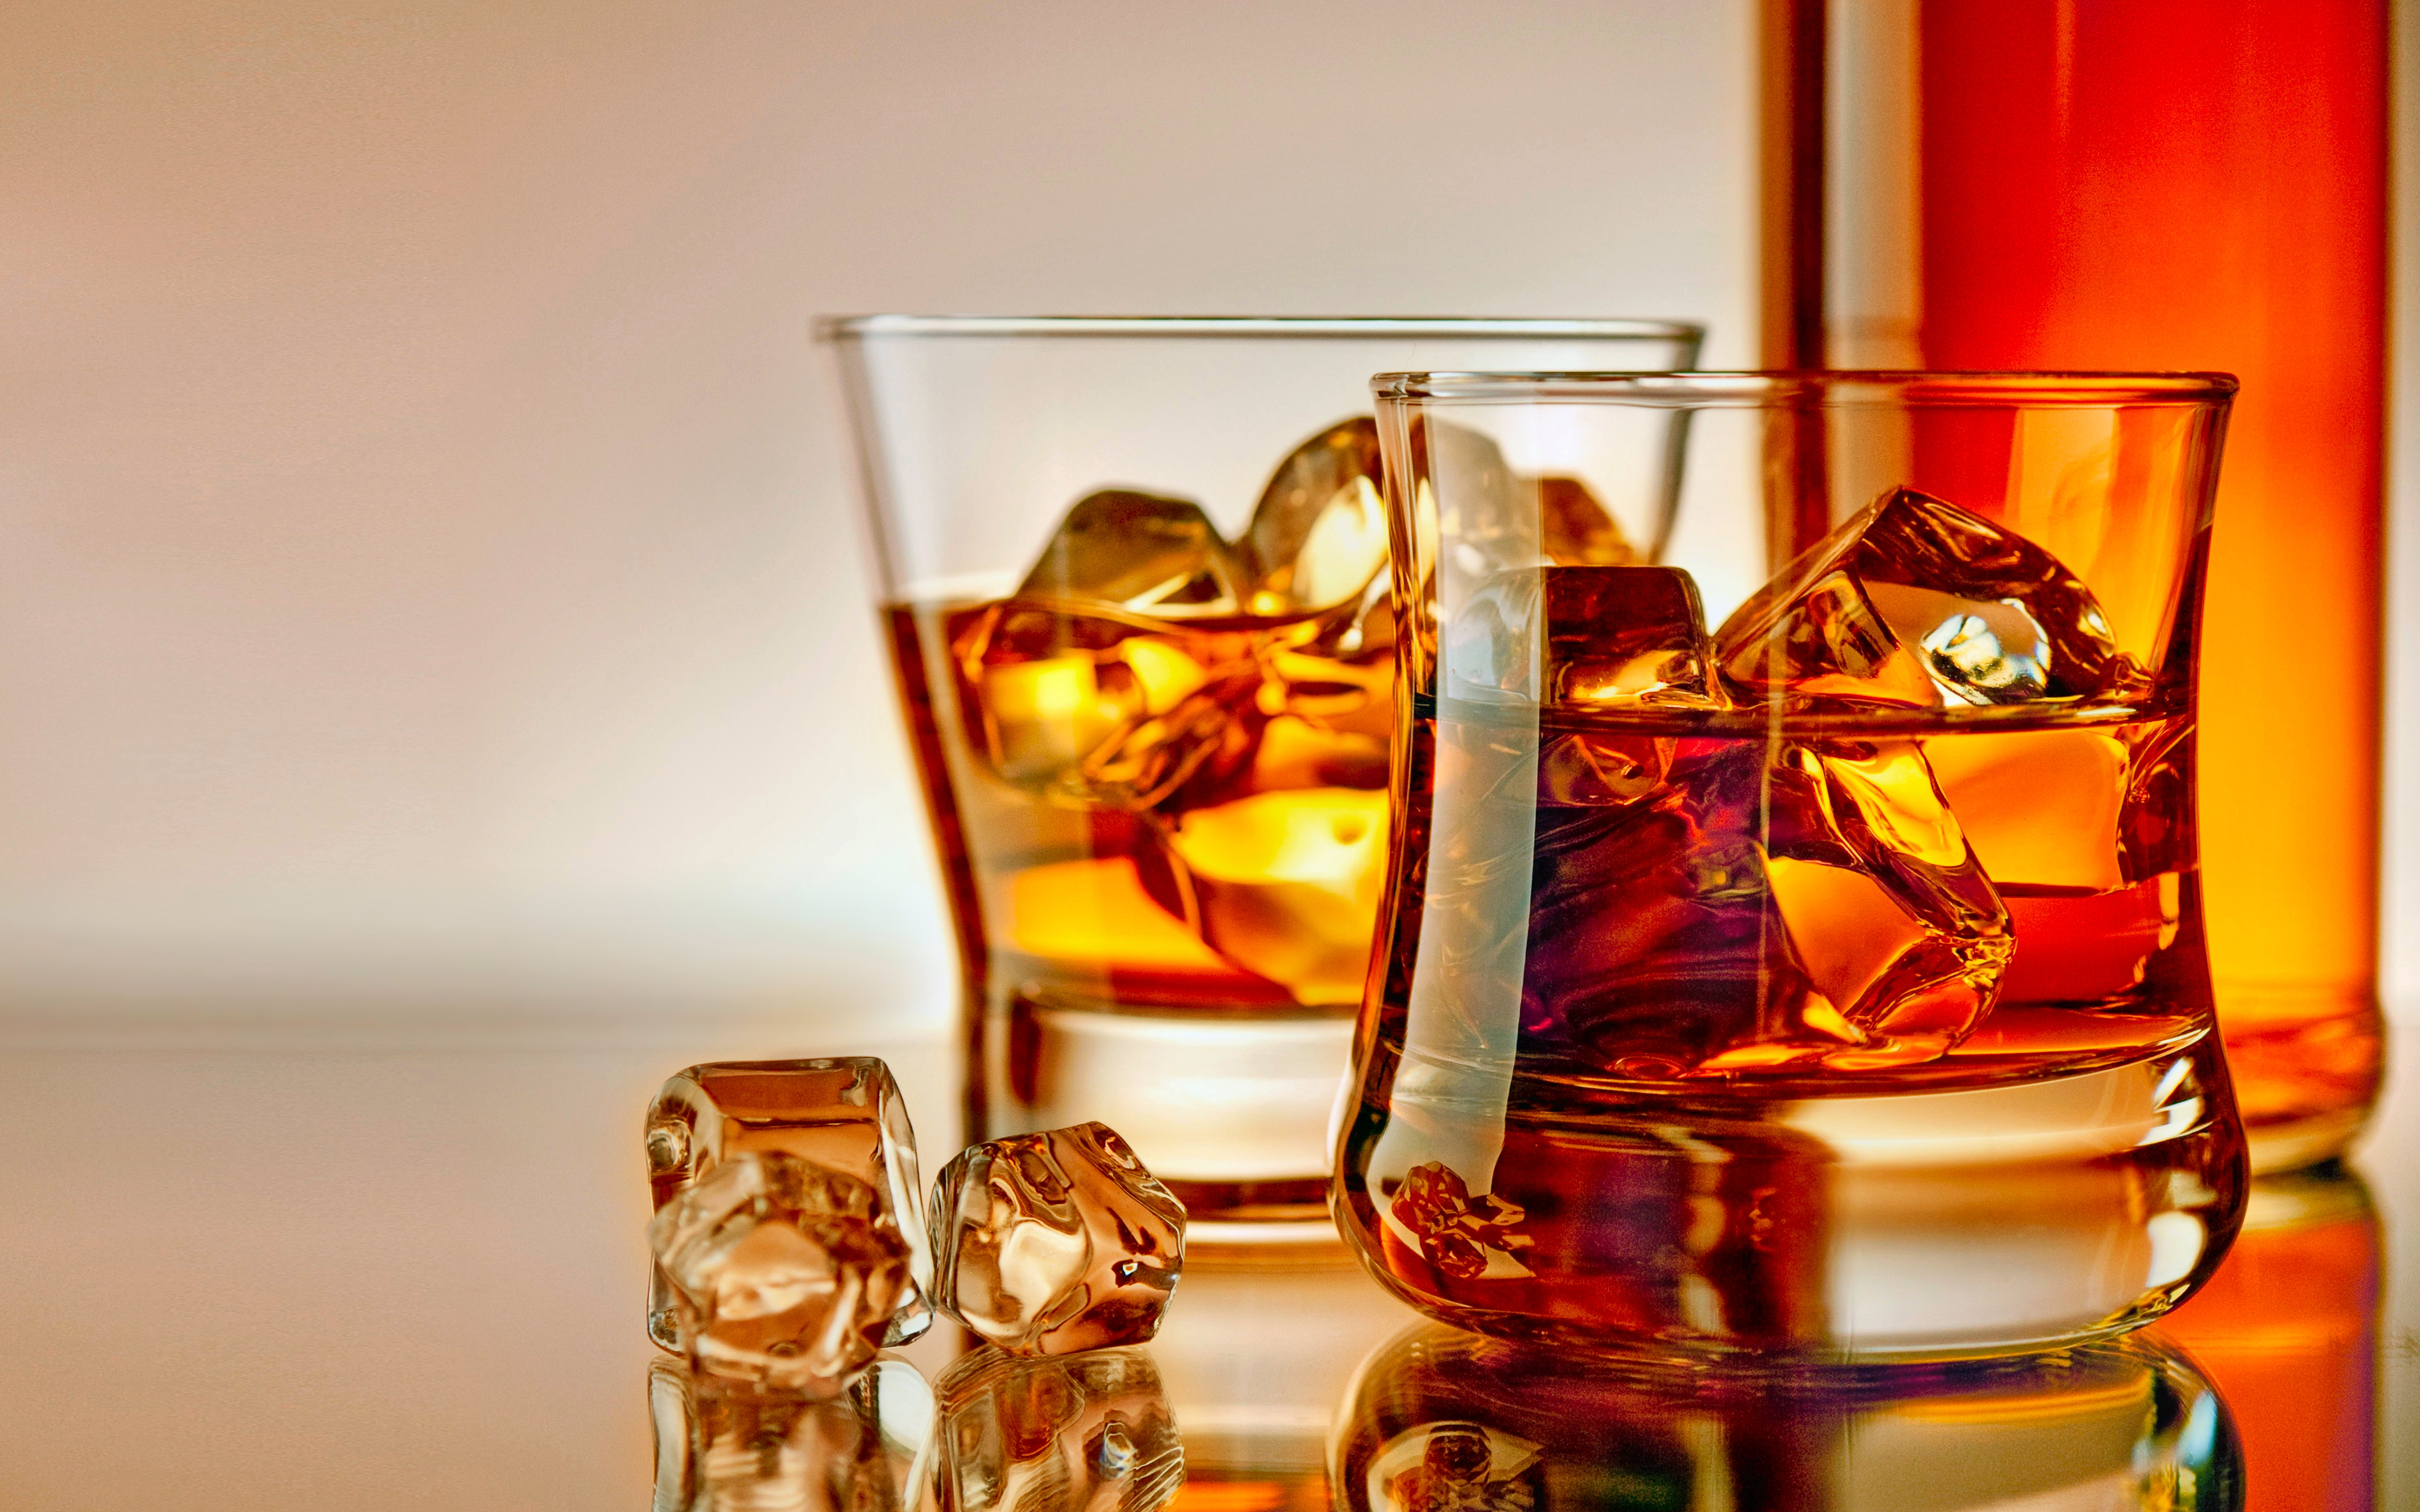 whisky 1080p wallpapers hd - photo #29